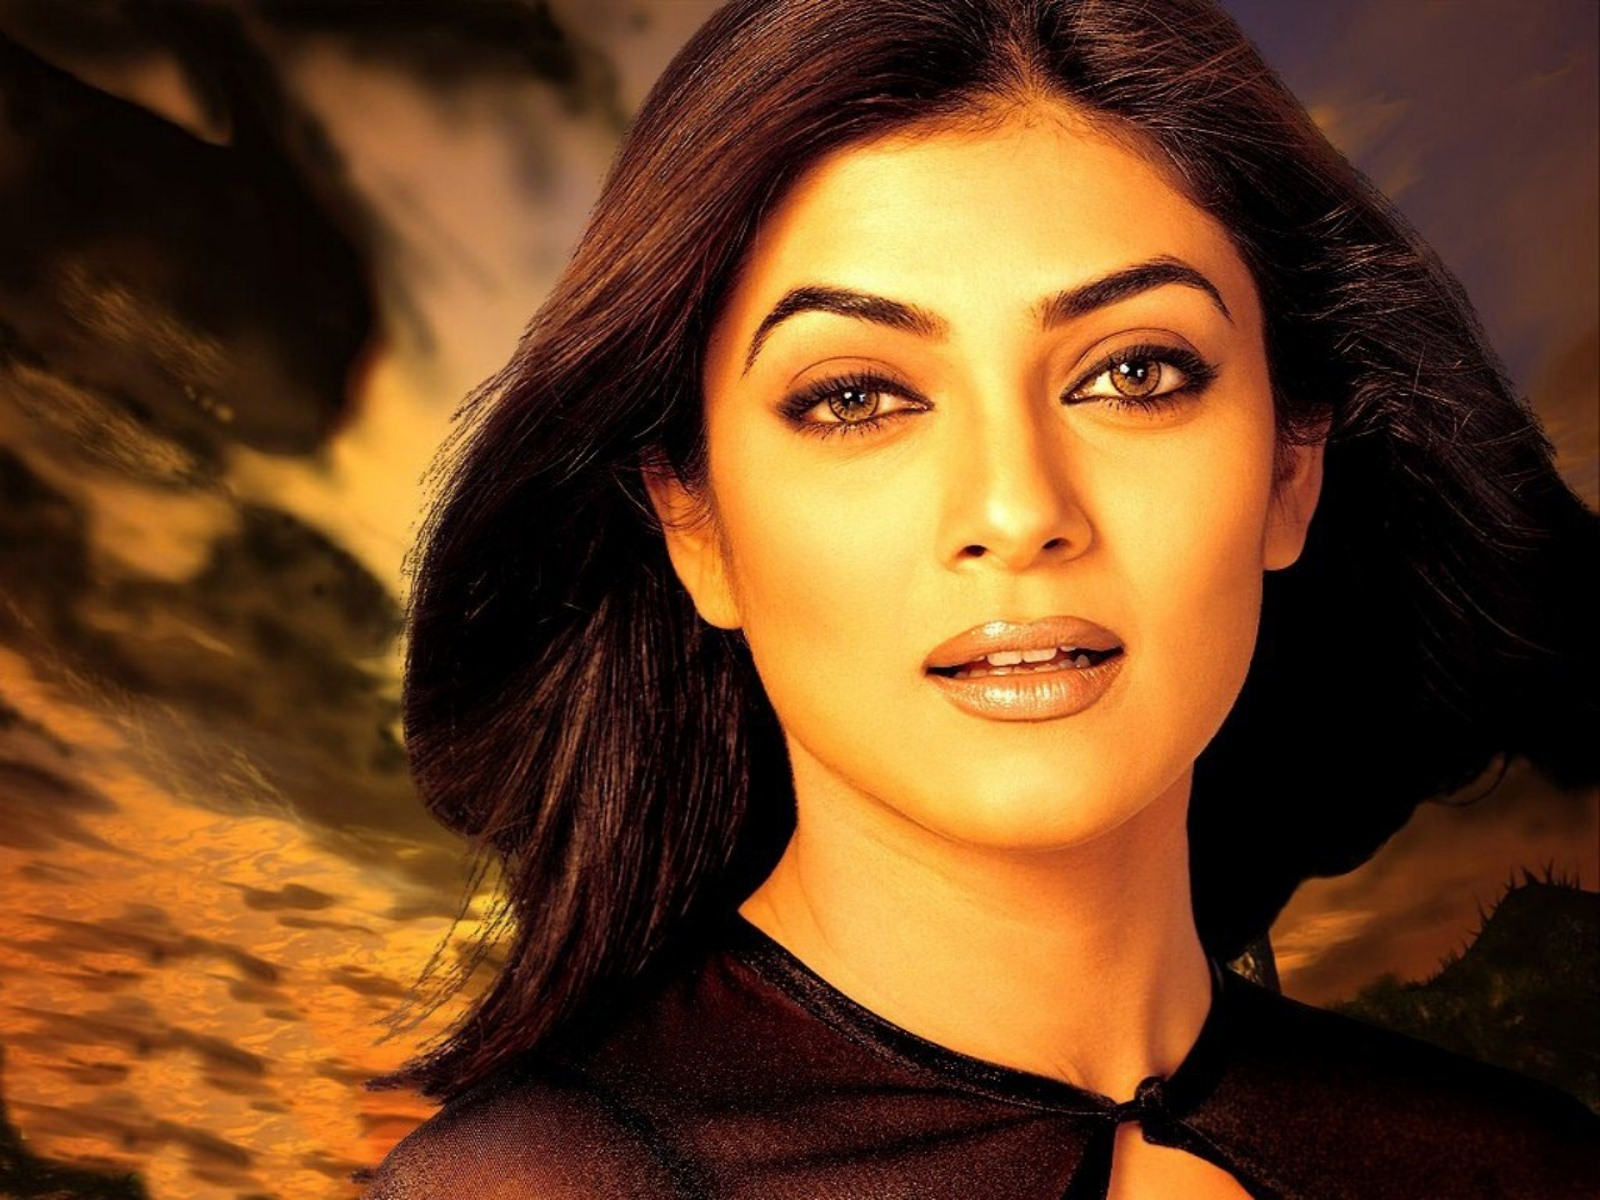 beautiful sushmita sen wallpaper images photos download